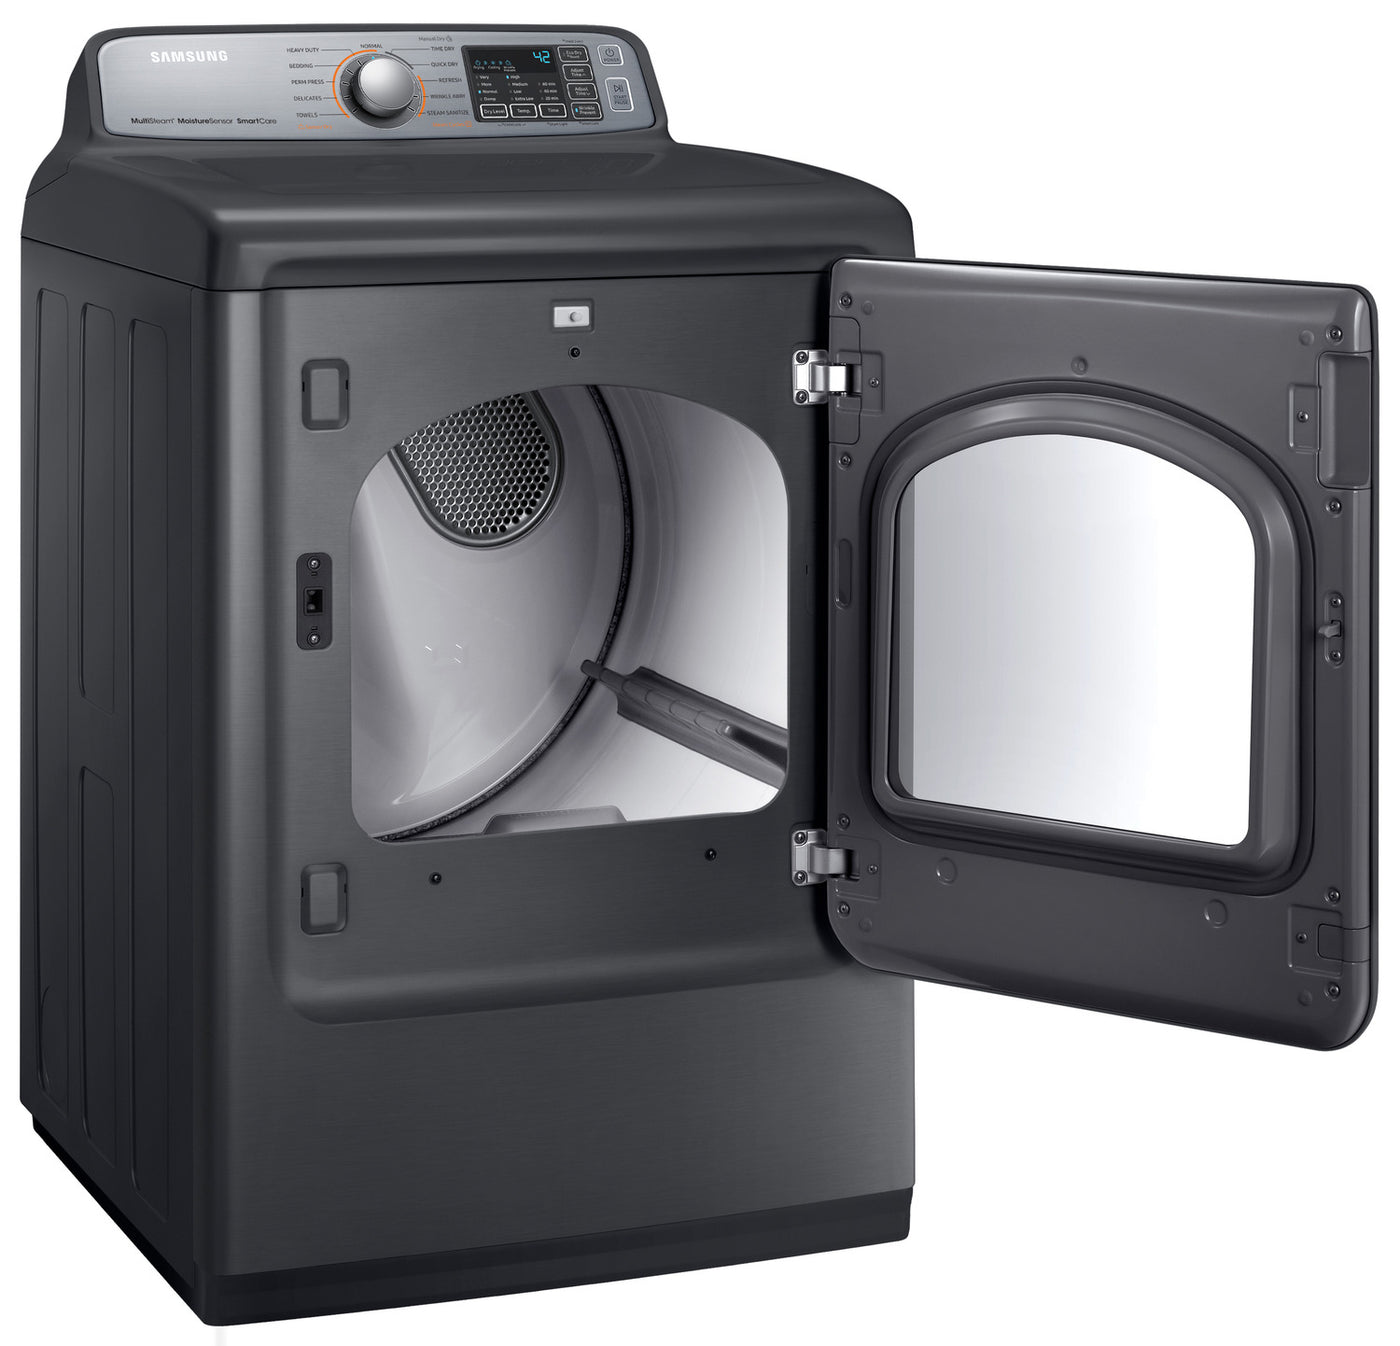 Samsung Platinum Electric Dryer 7 4 Cu Ft Dve50m7450p